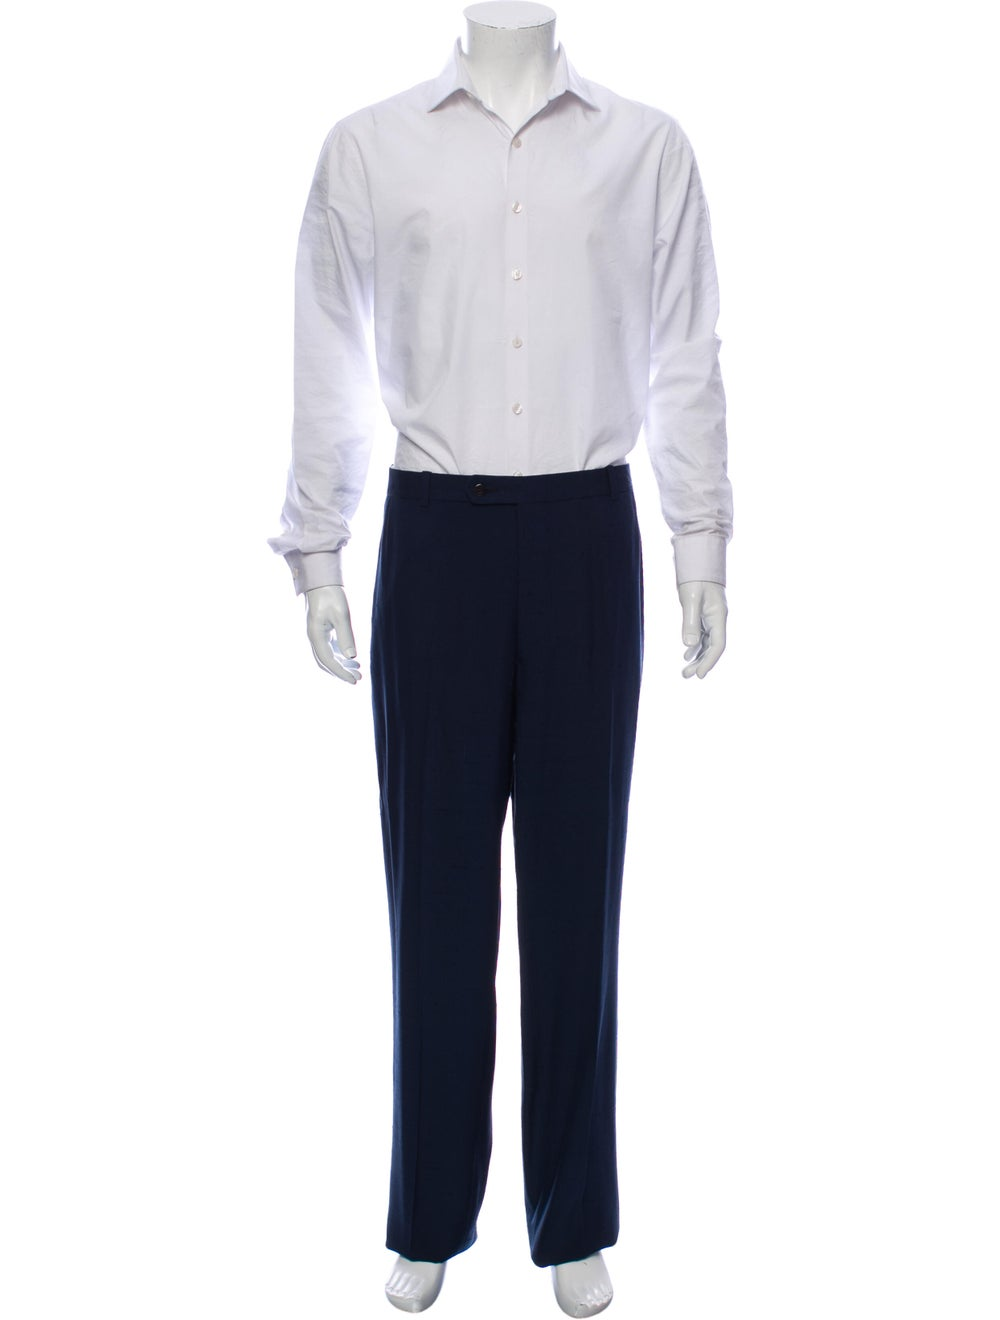 Silk Two-Piece Suit - image 4